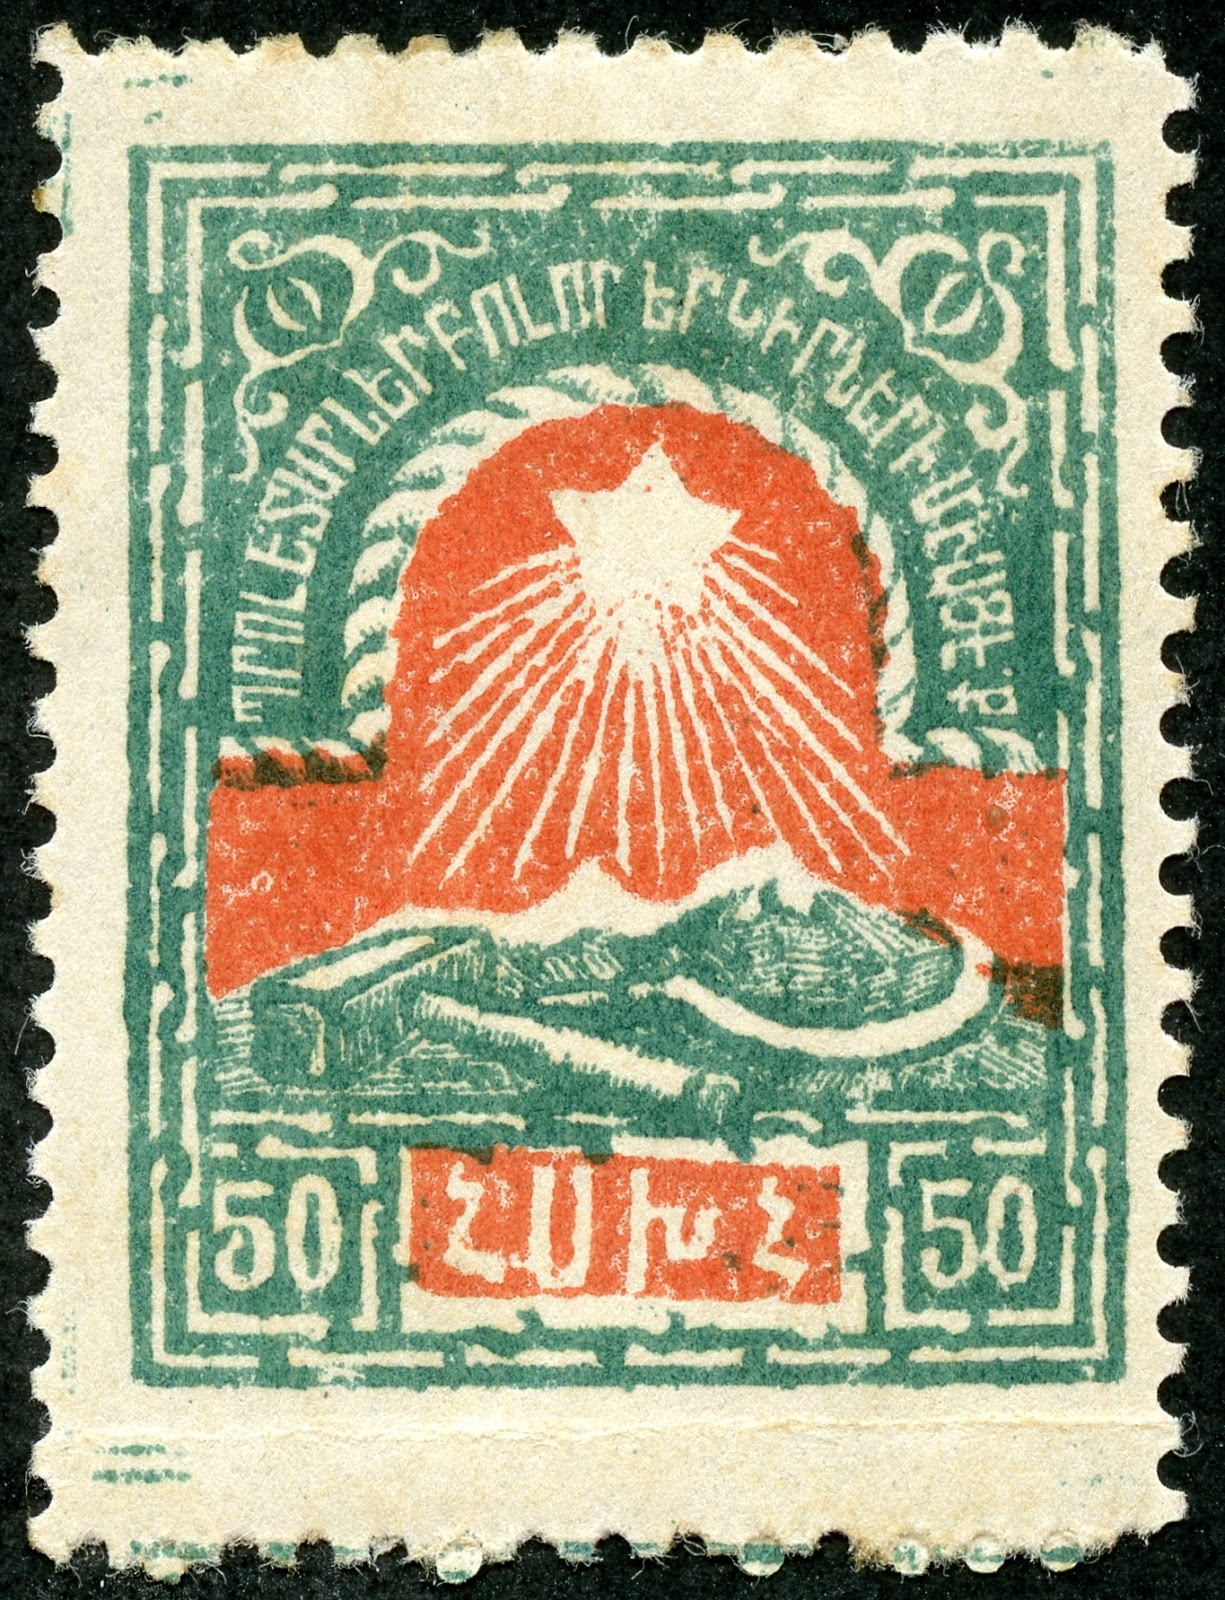 ... there are two lithographic types of this stamp, and I have both types.  Still, I cannot rule out that one or the other of my examples are forgeries.